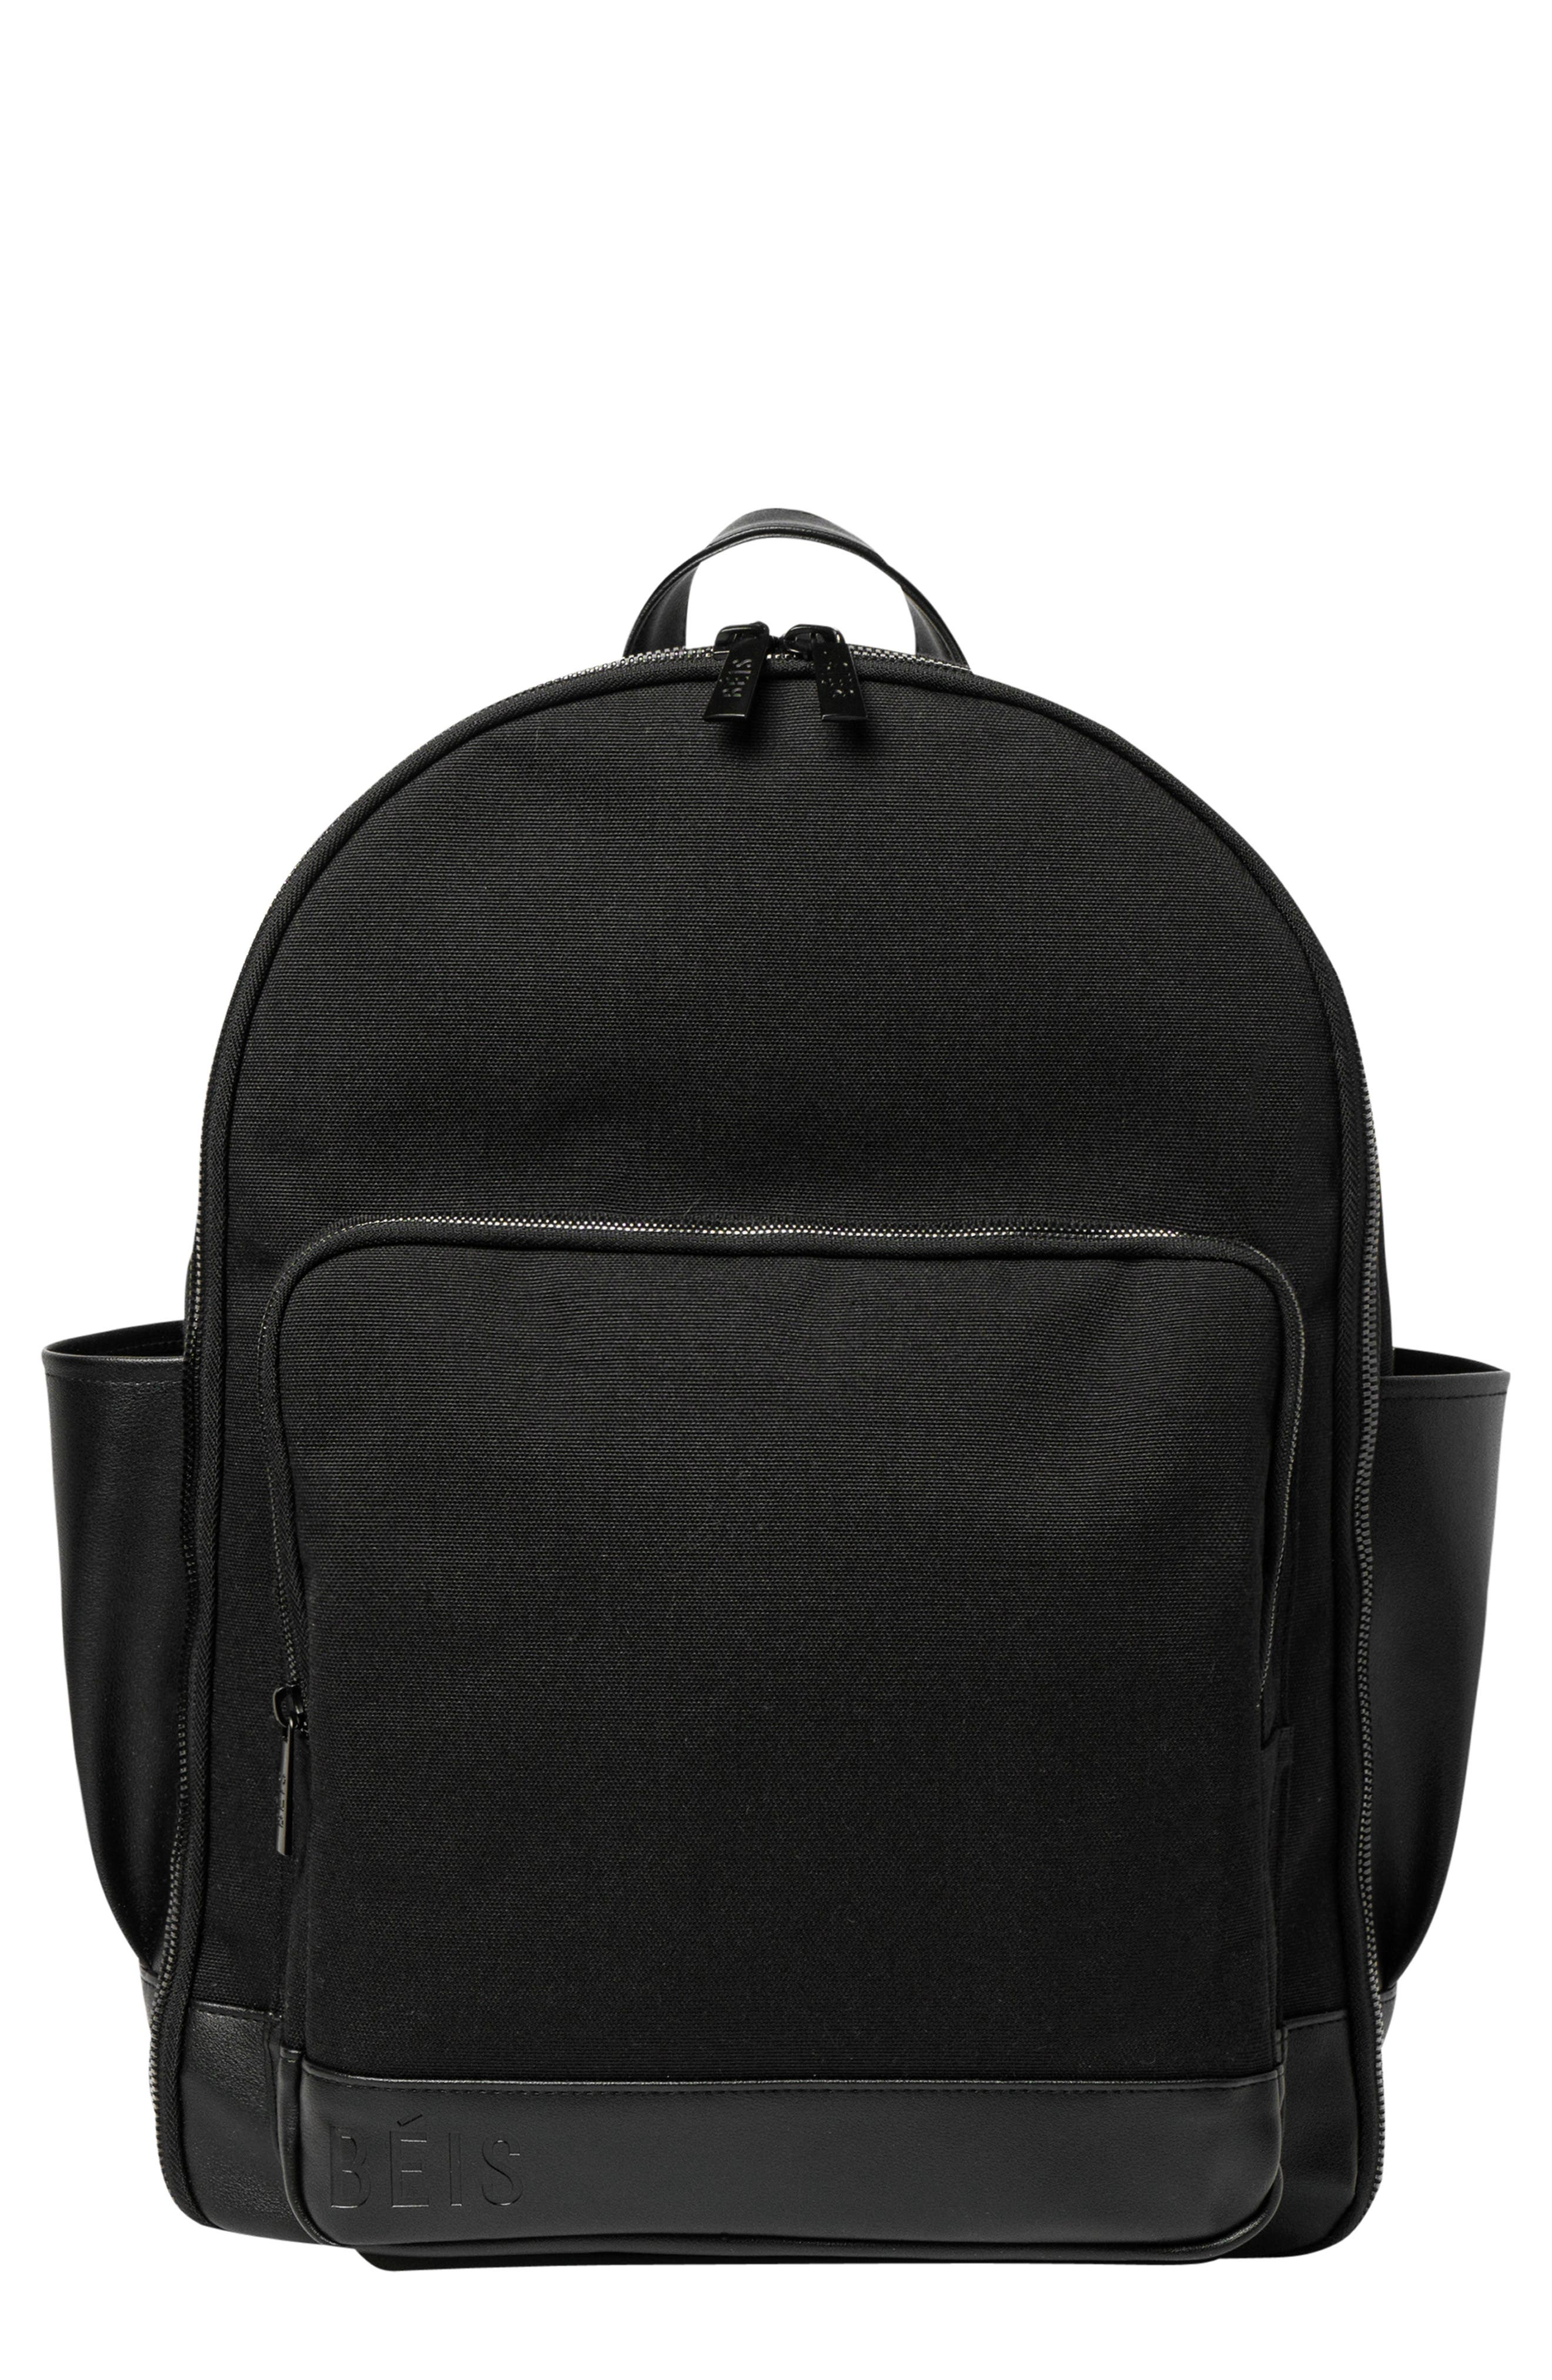 Travel Multi Function Travel Backpack,                             Main thumbnail 1, color,                             BLACK